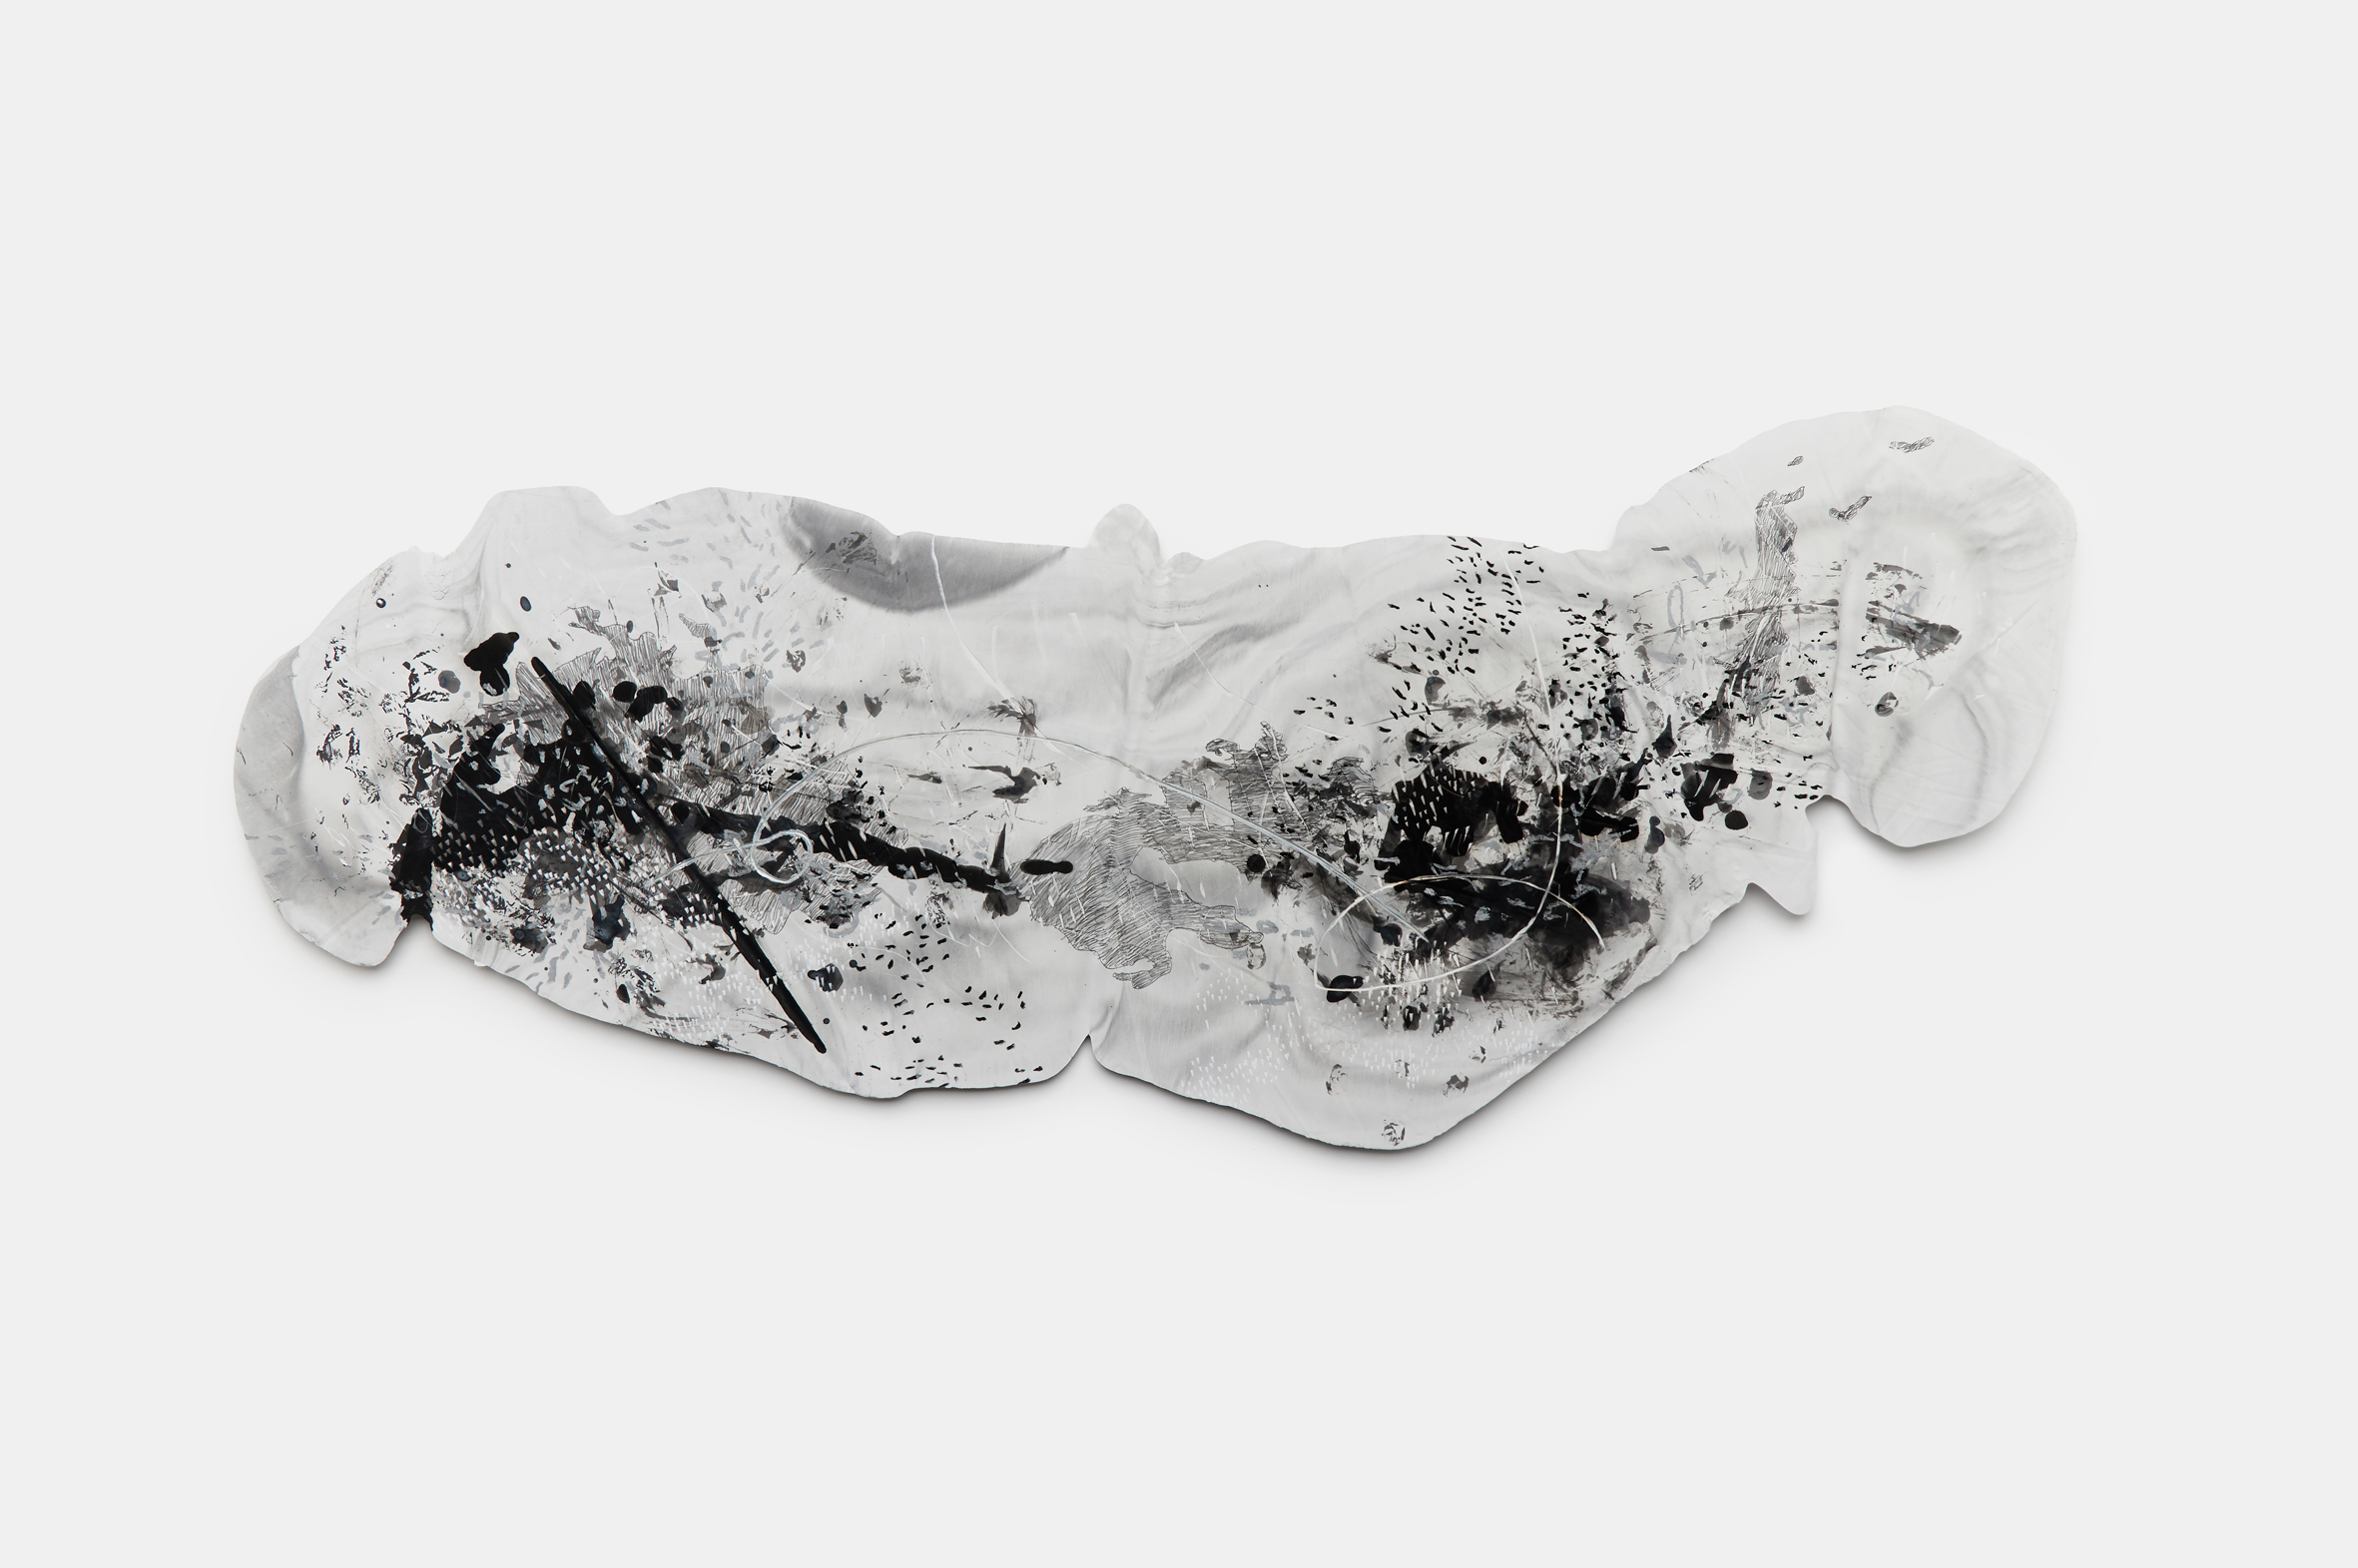 Vomit series #6  Engraving on plaster panel, mixture of ink and dry materials, silver sumi ink, pencil, oil pastel 100x38cm 2018